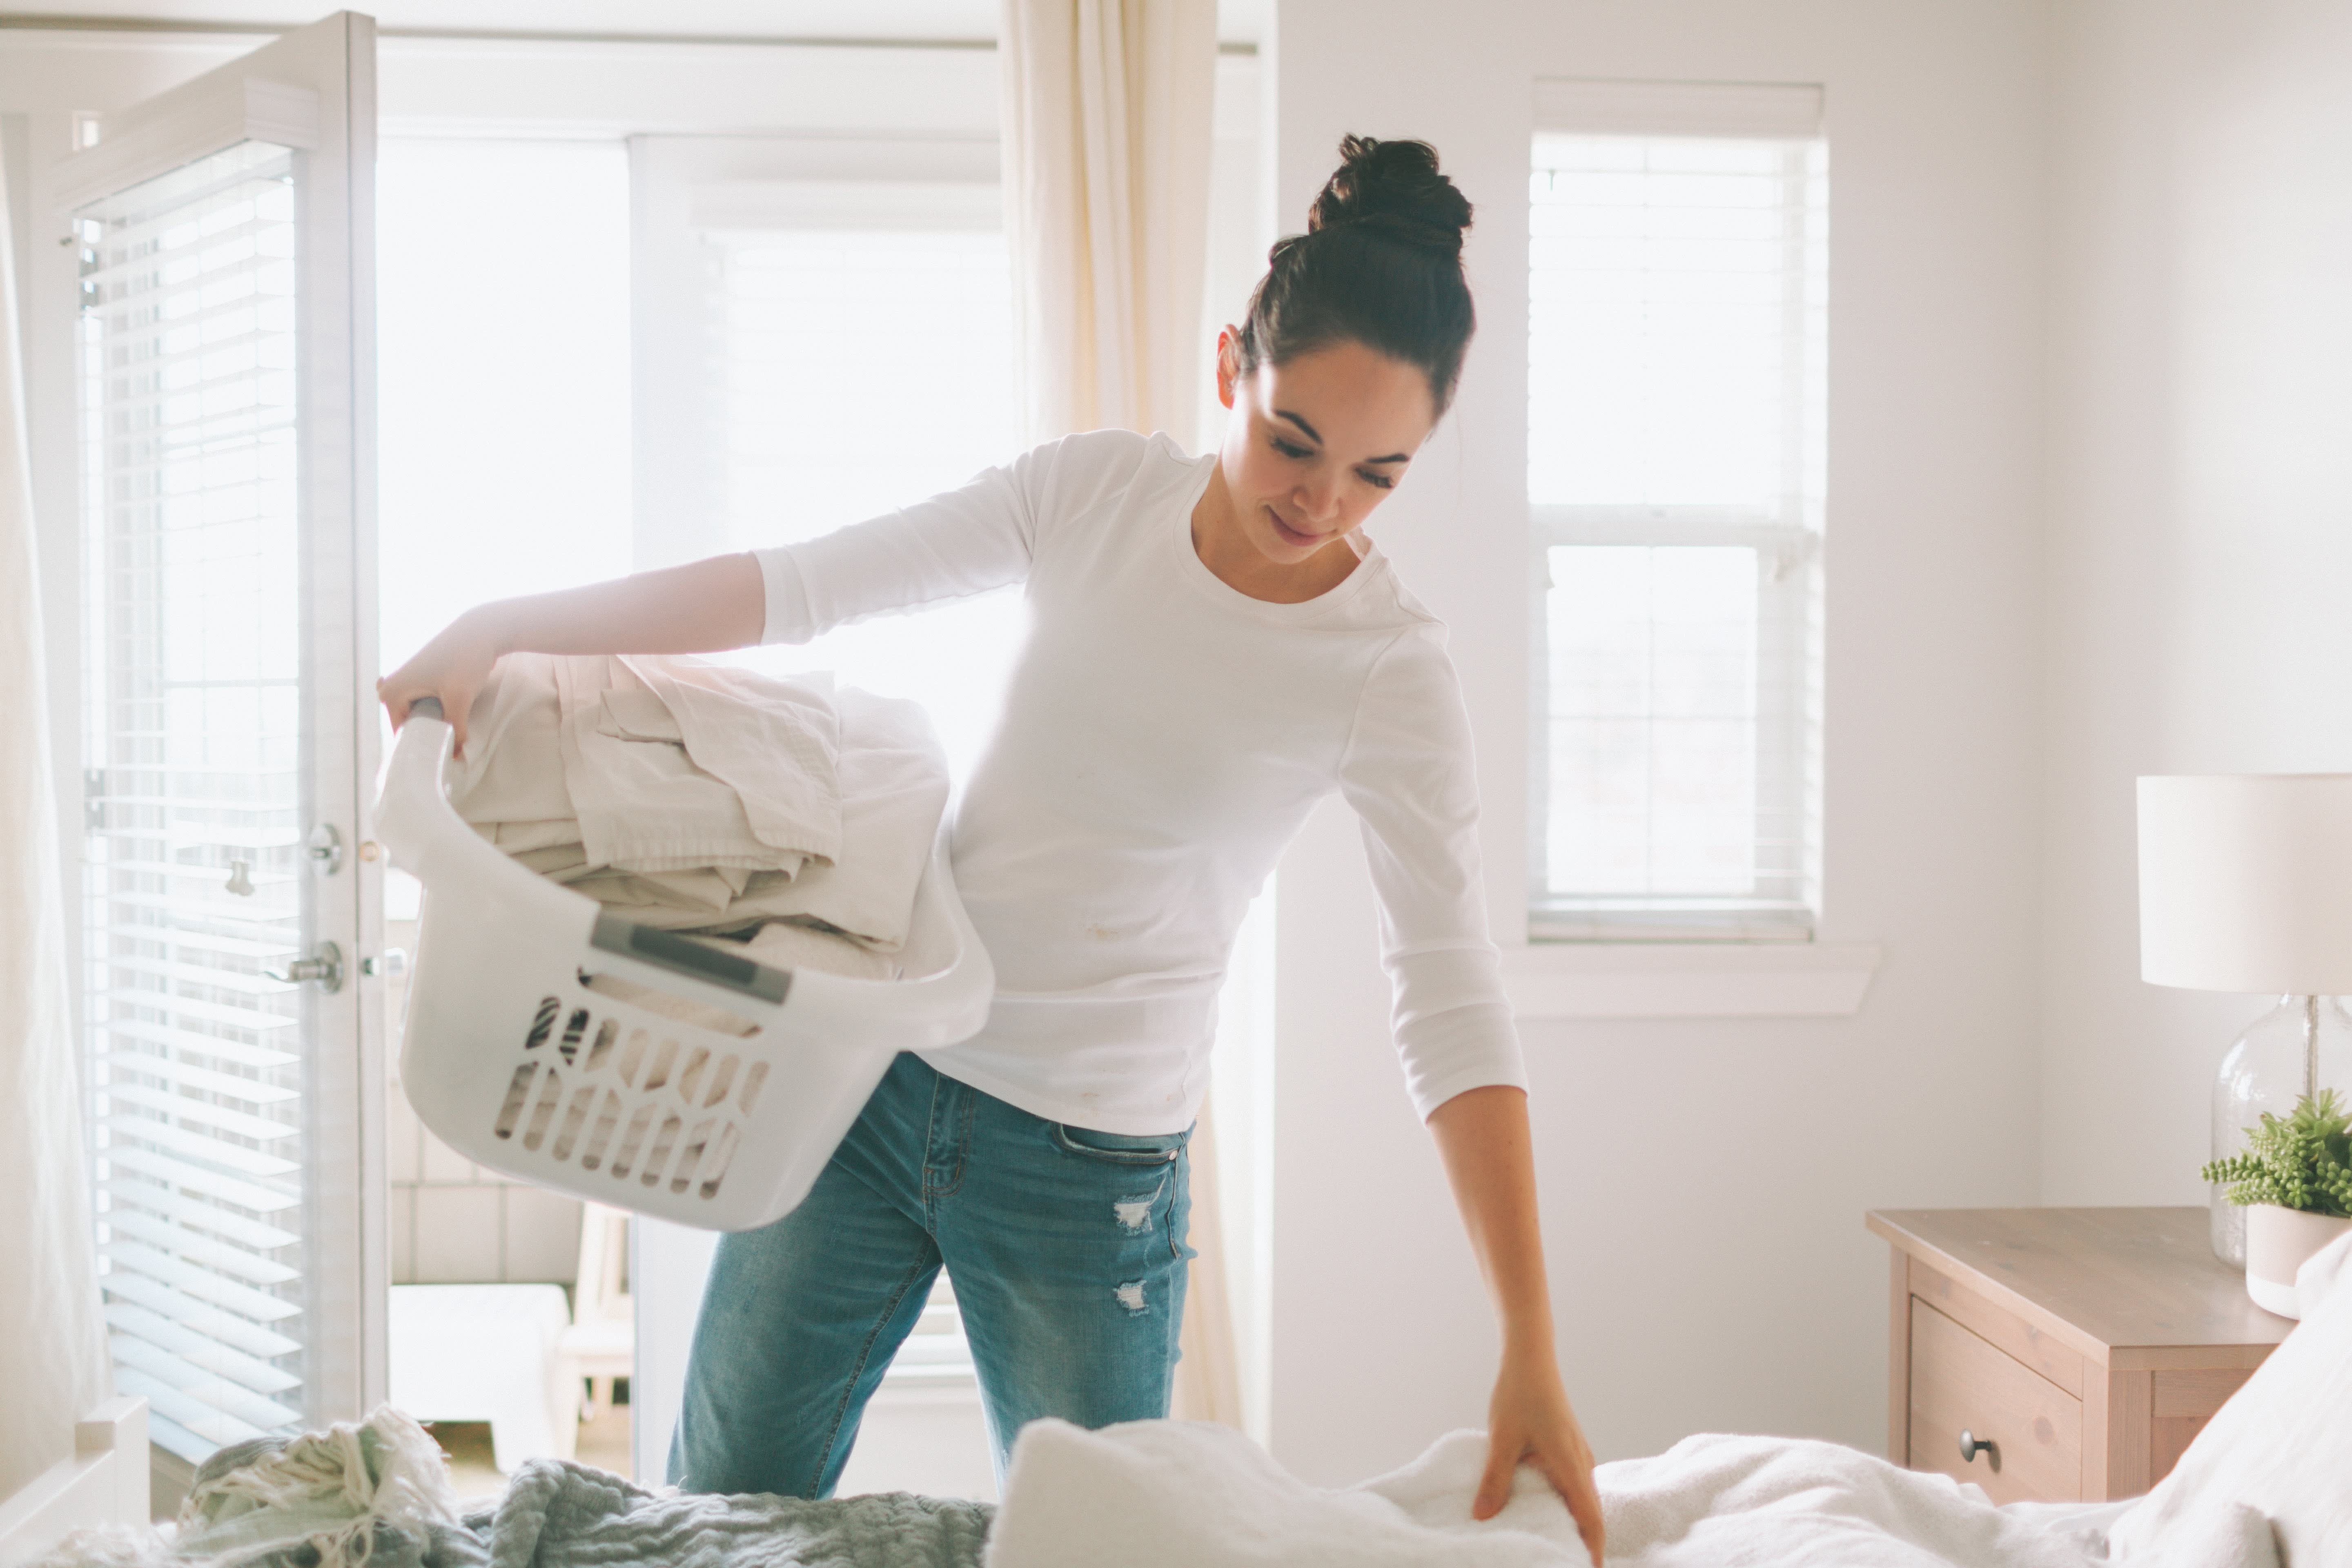 This easy life skill can help you save money, says expert at Good Housekeeping